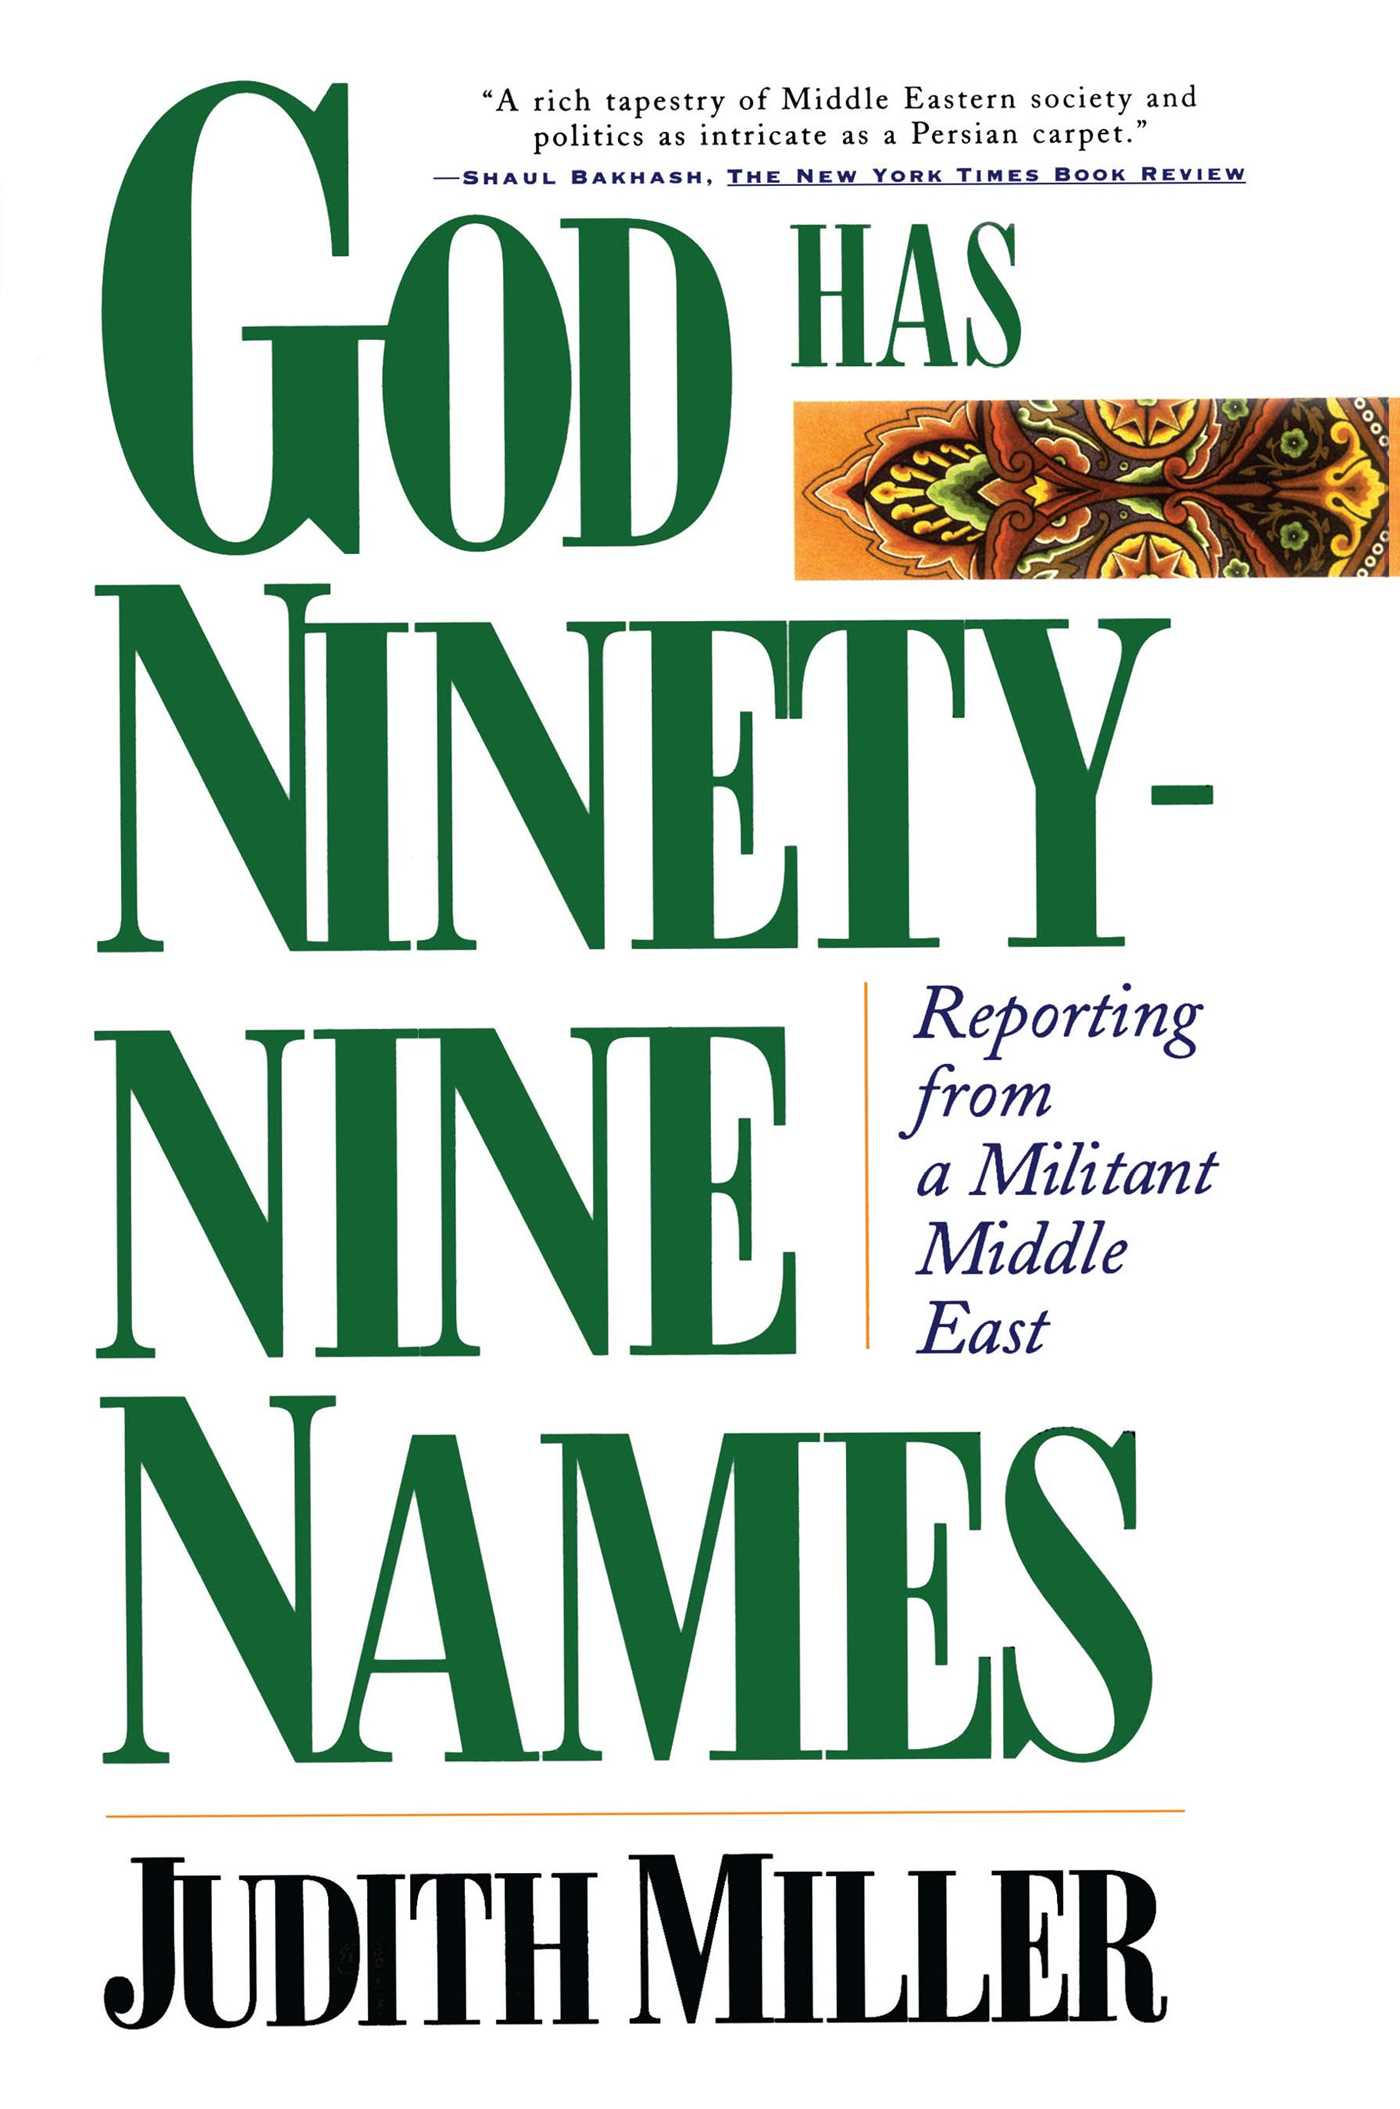 God has ninety nine names 9780684832289 hr